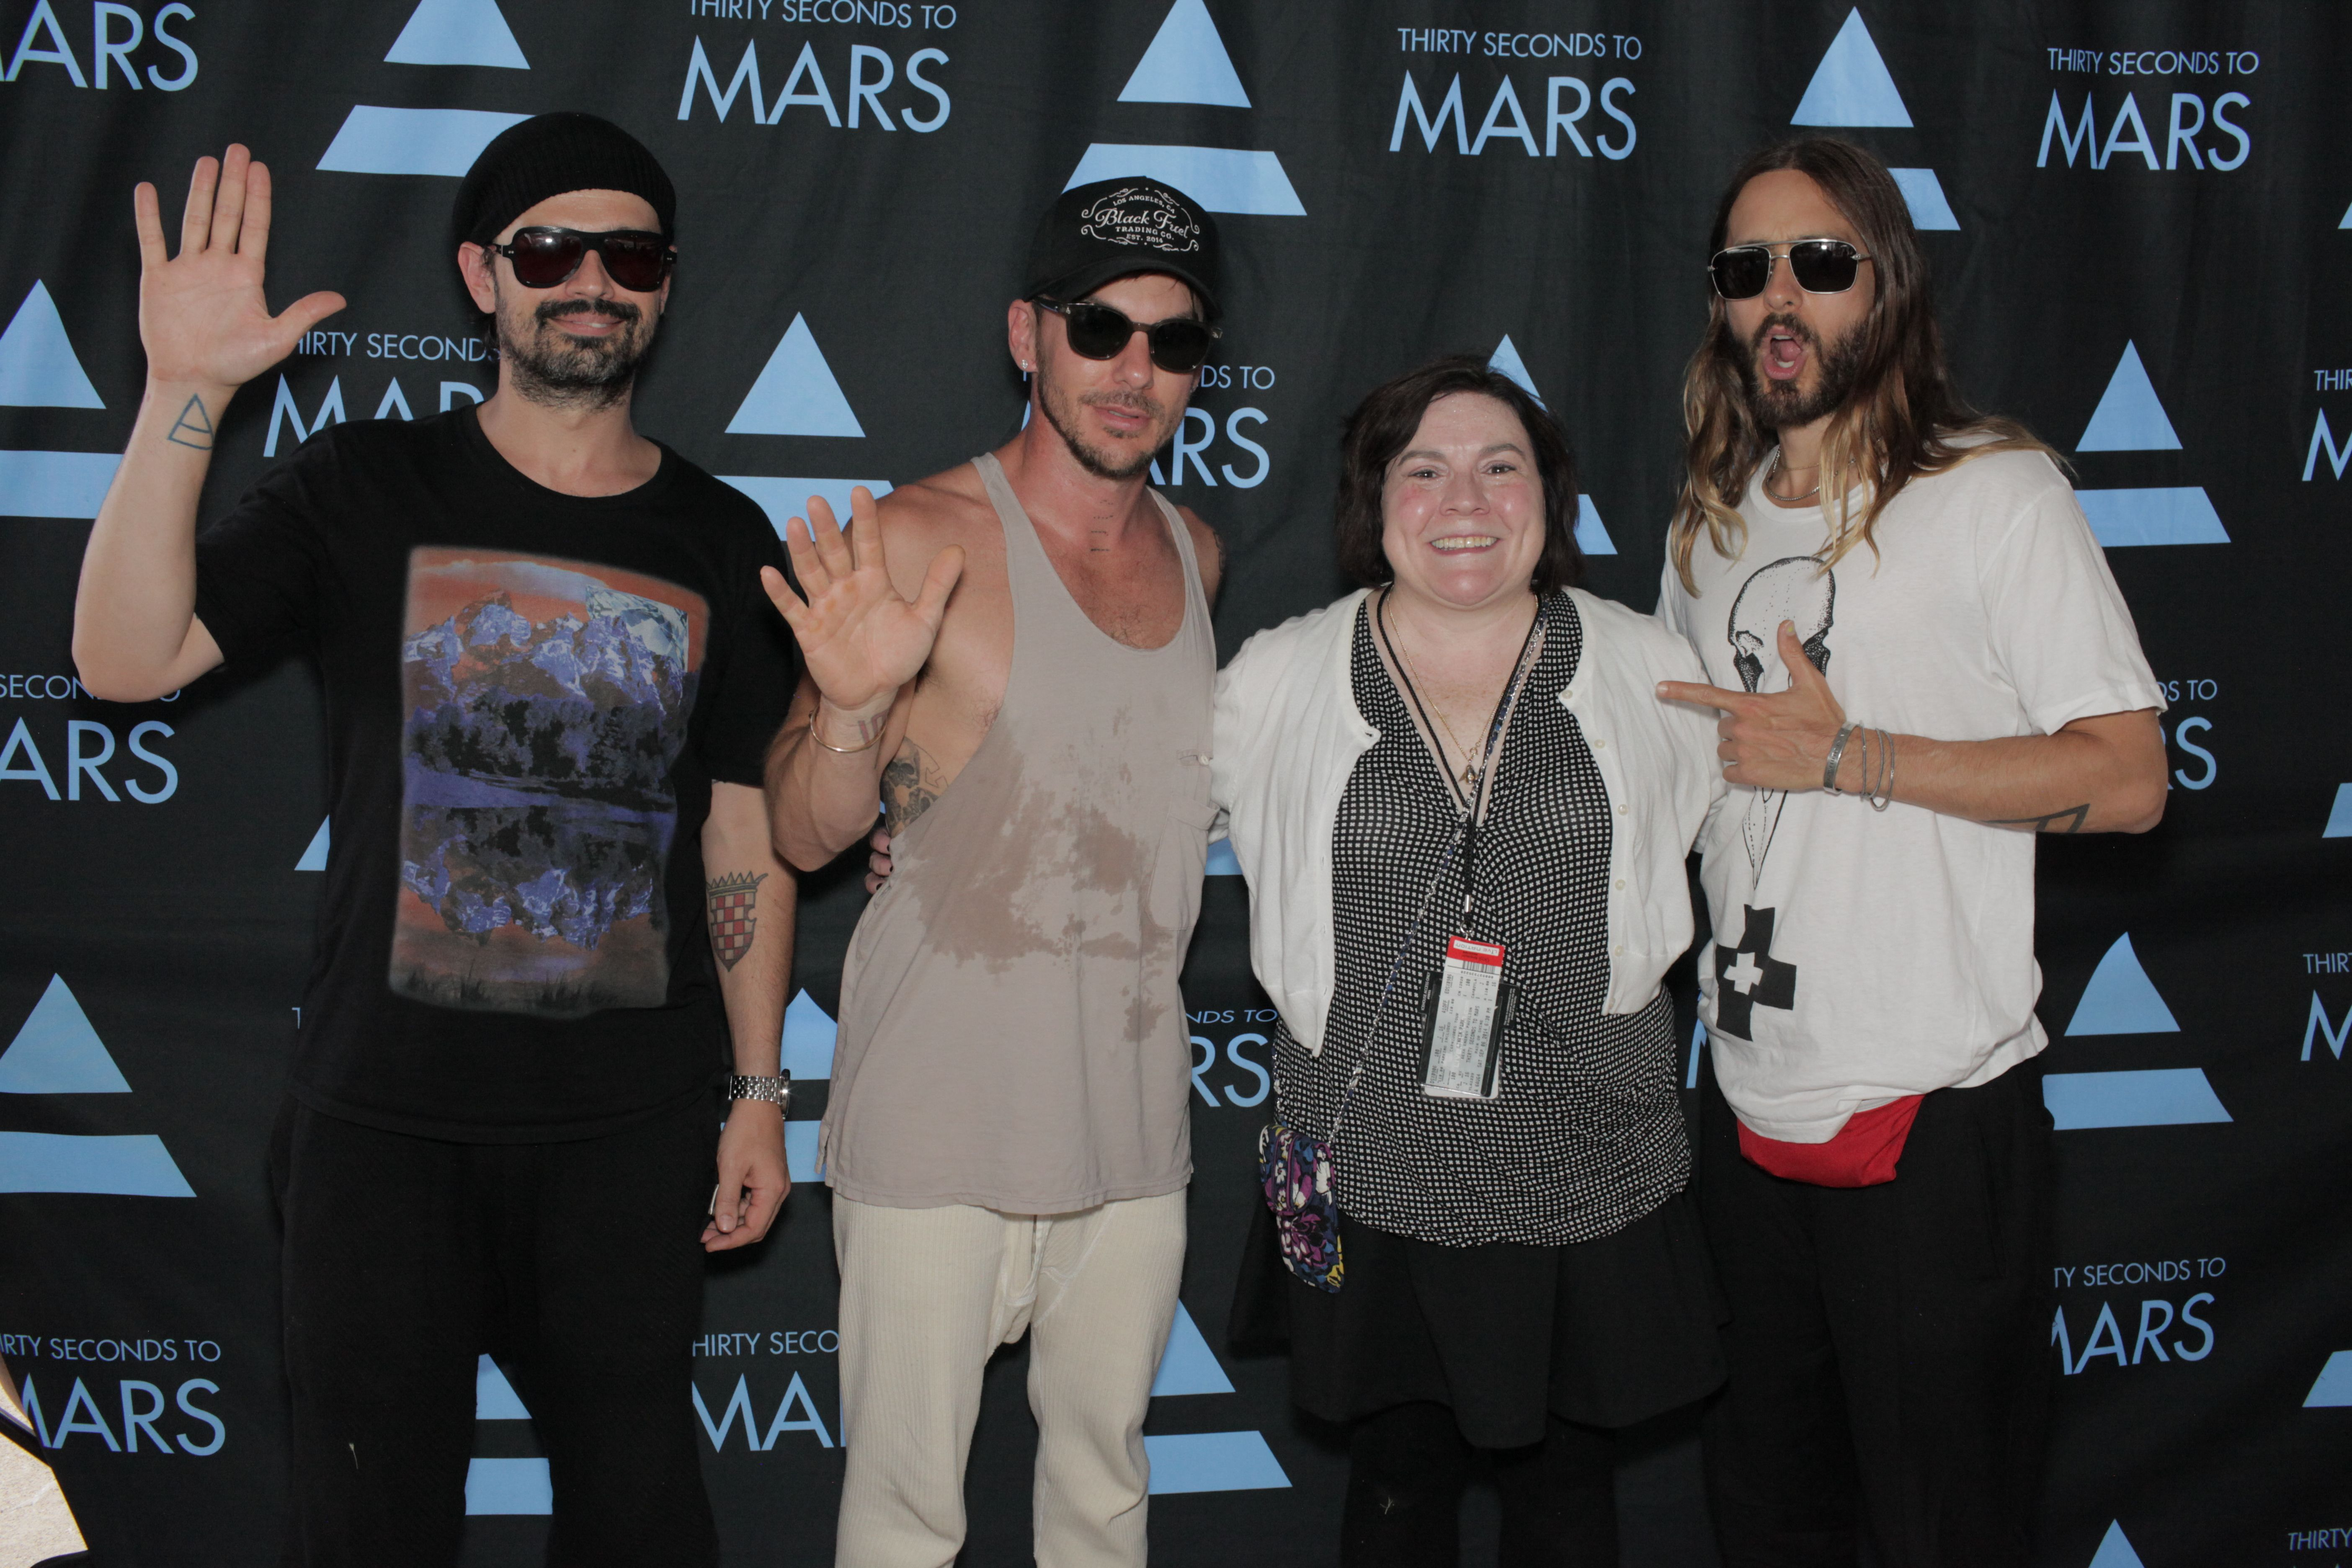 Vip meet greet with 30 seconds to mars 30 seconds to mars vip meet greet with 30 seconds to mars kristyandbryce Gallery